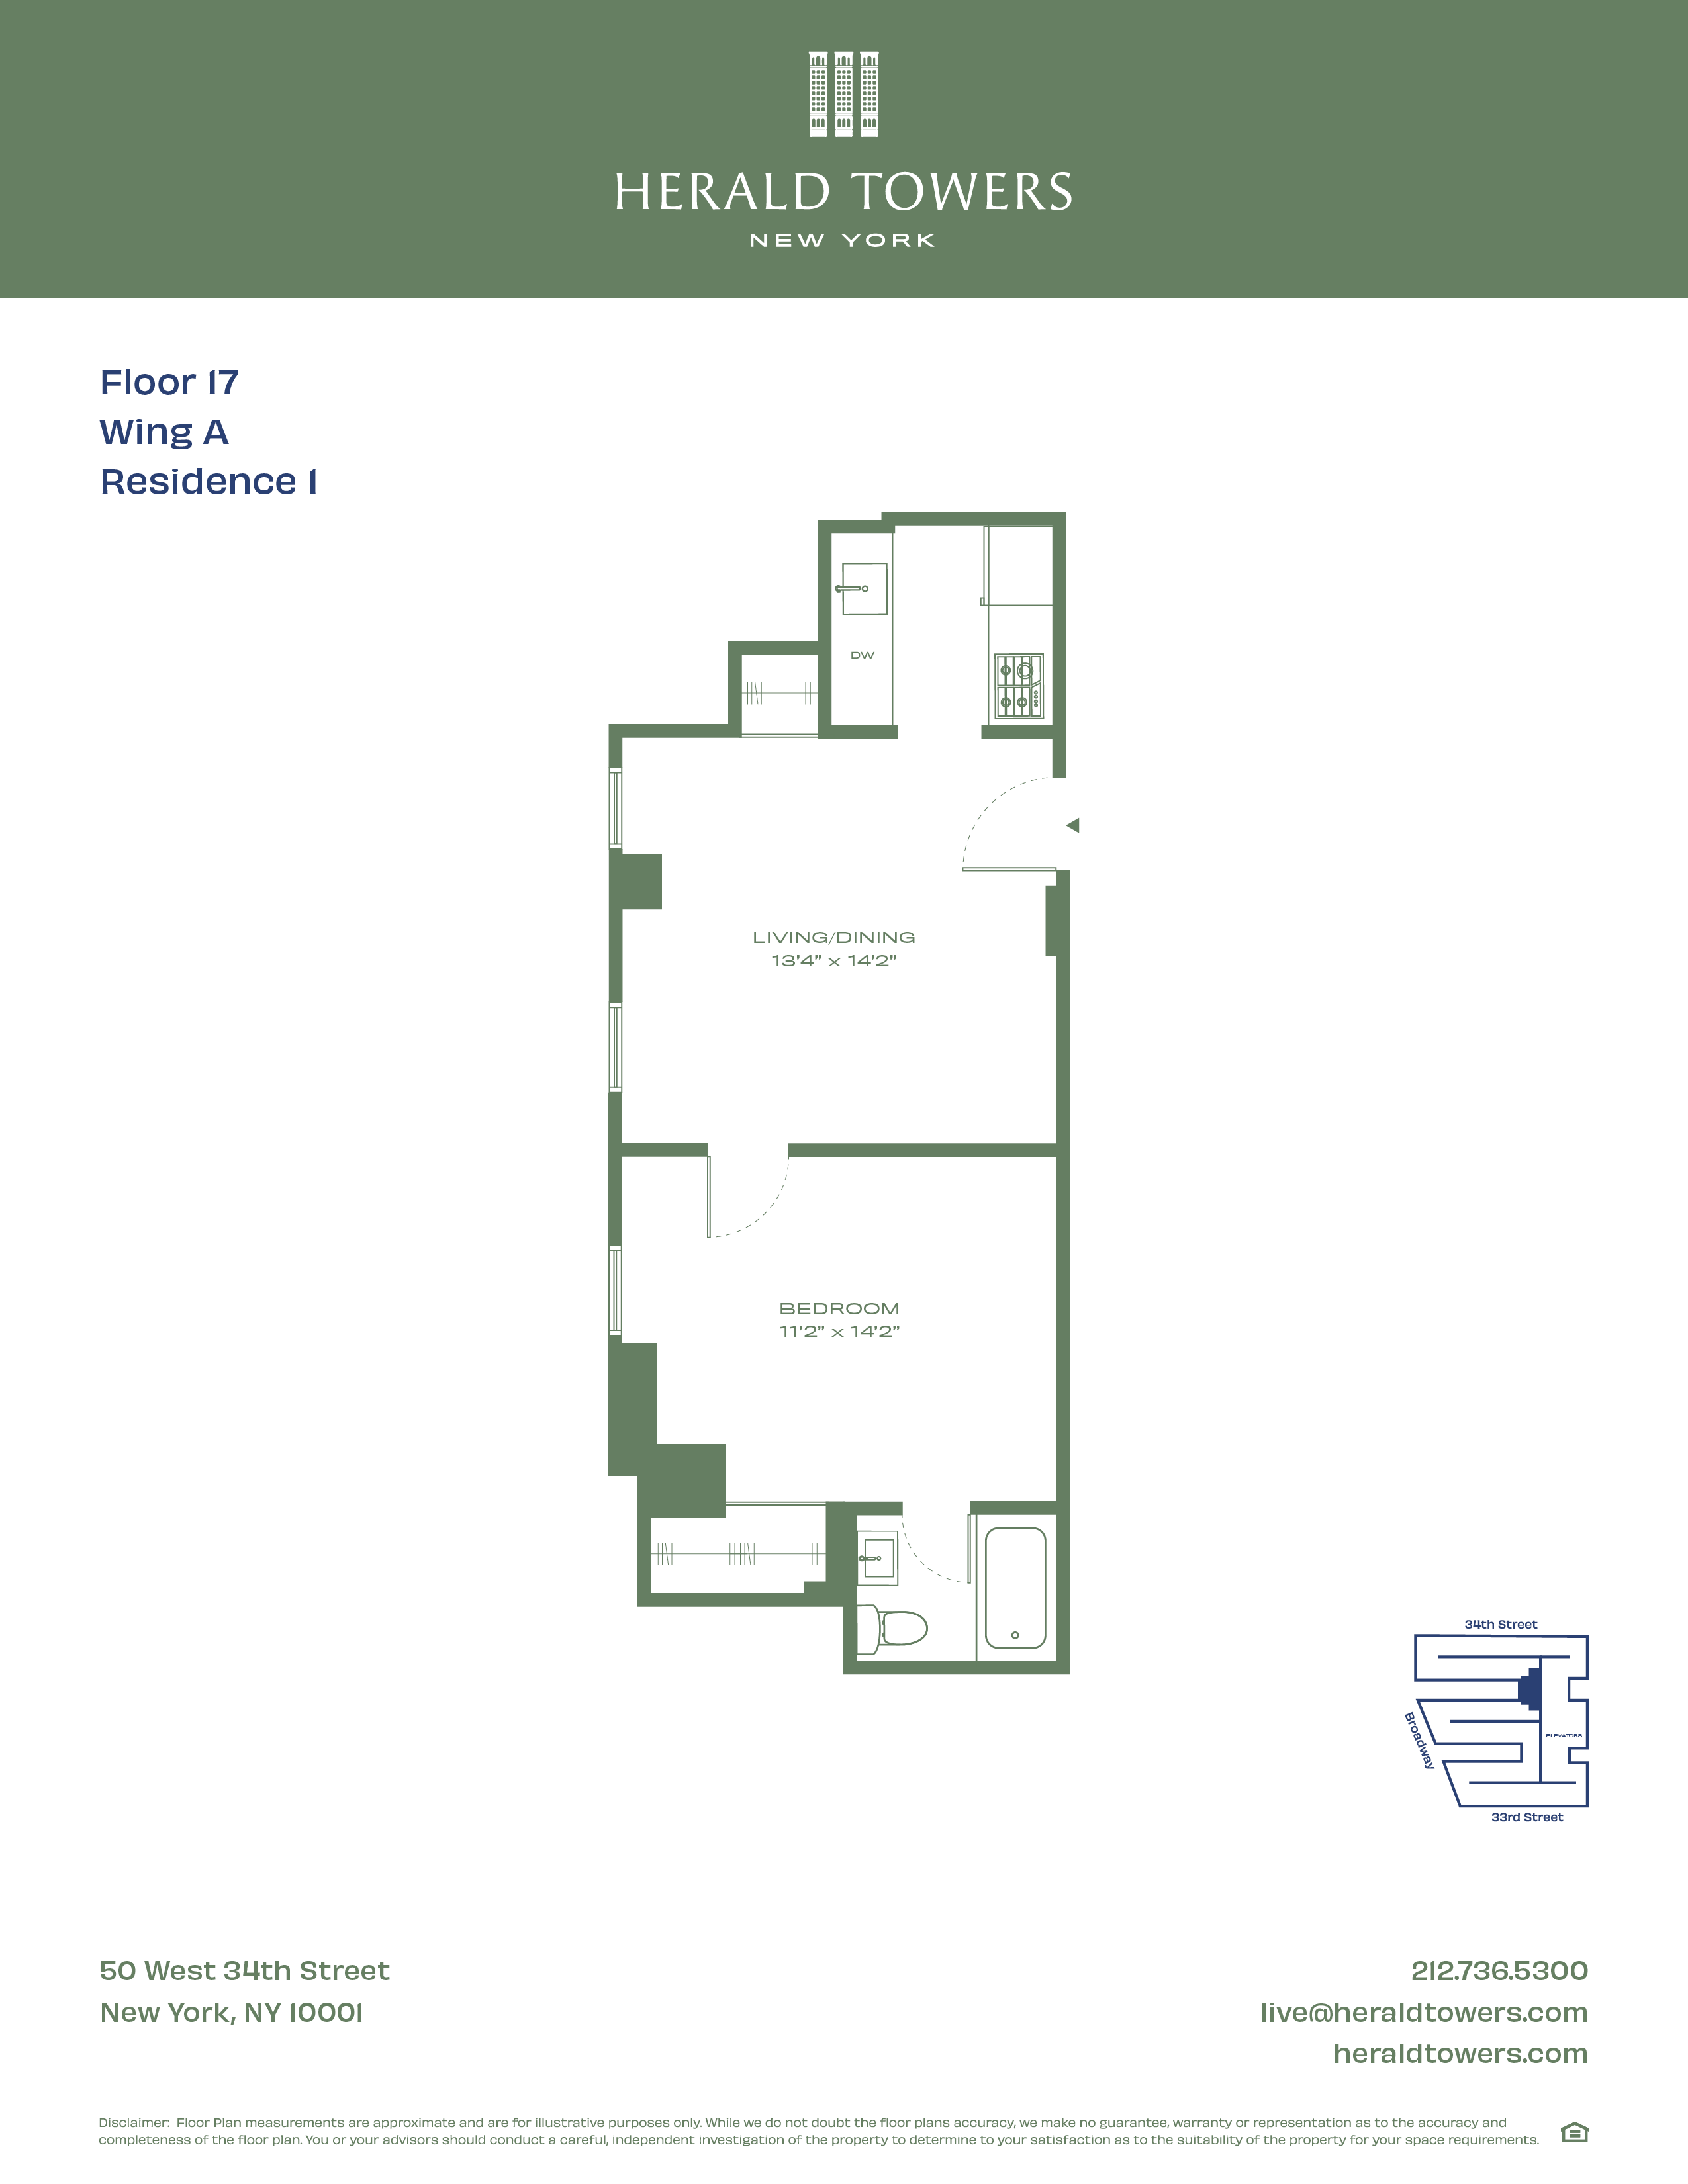 Floor plan for 17A01